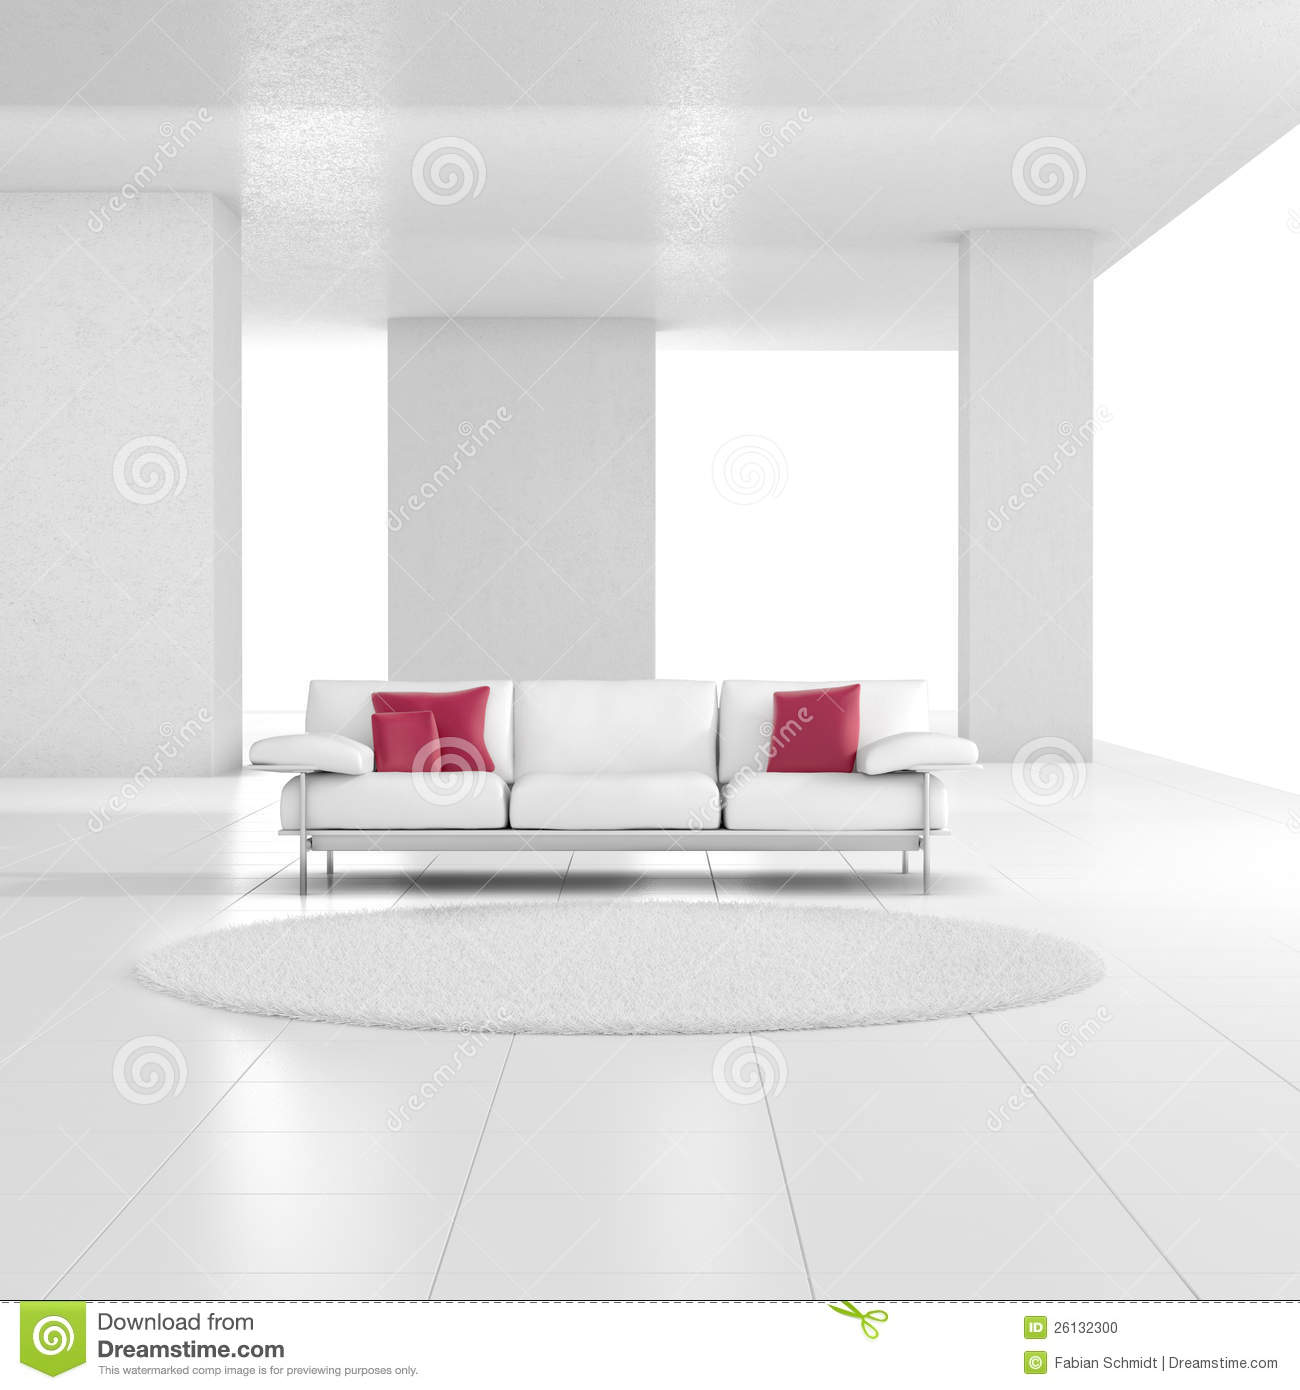 White room with carpet